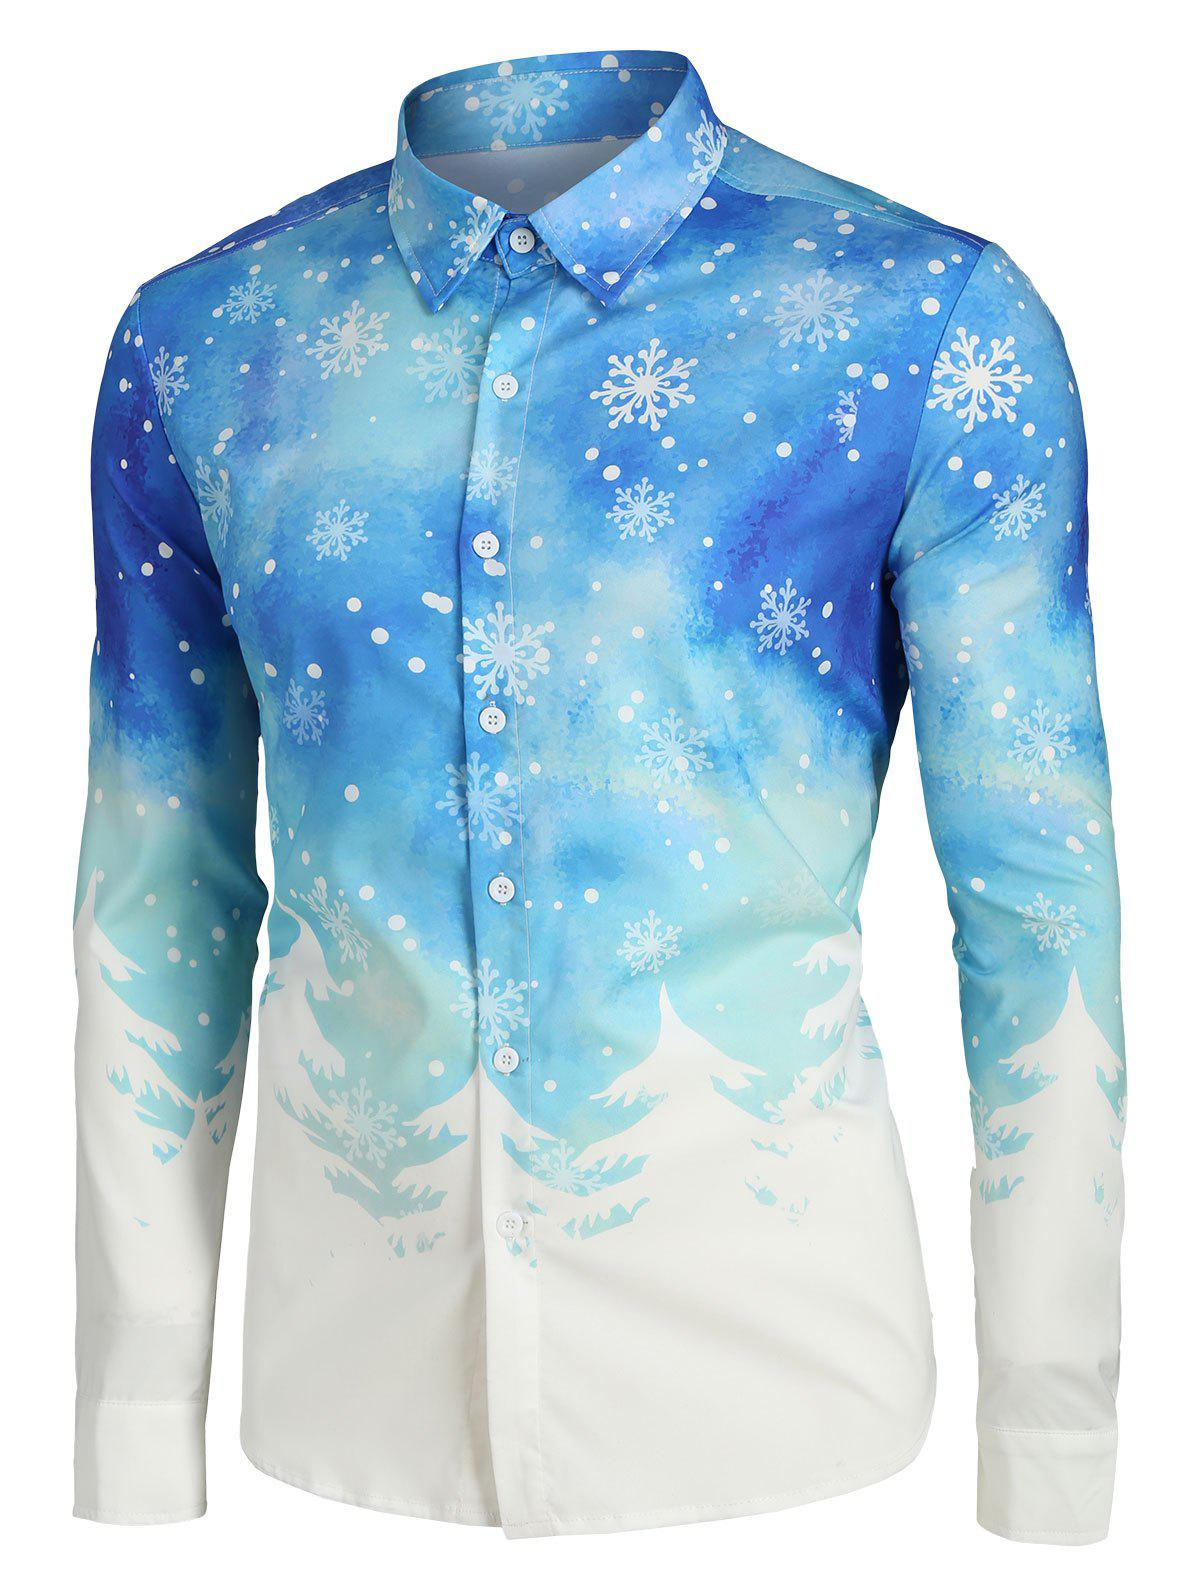 Plus Size Christmas Tree and Snowflake Print Button Up Shirt - multicolor 2XL